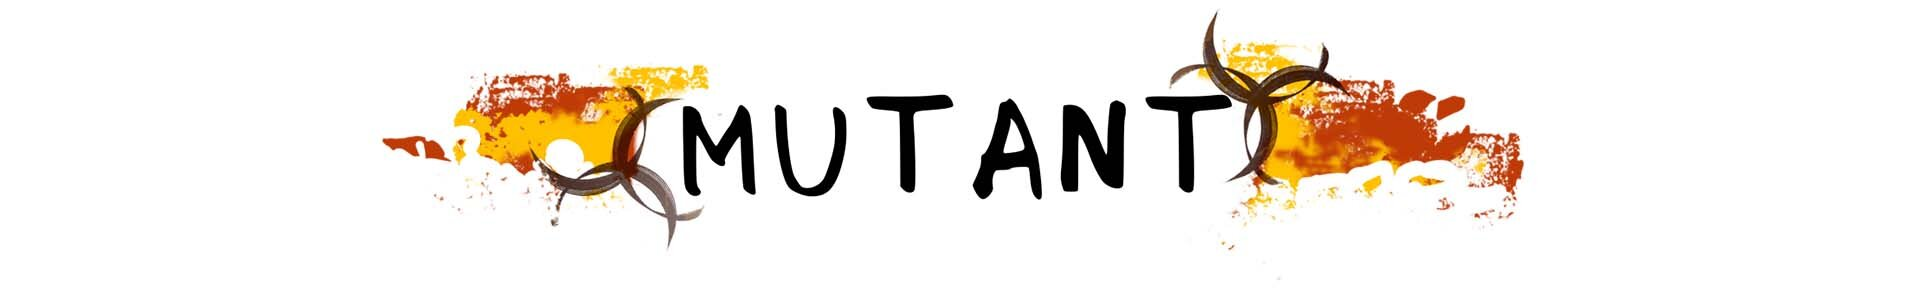 Mutant Banner - Website Version.jpg